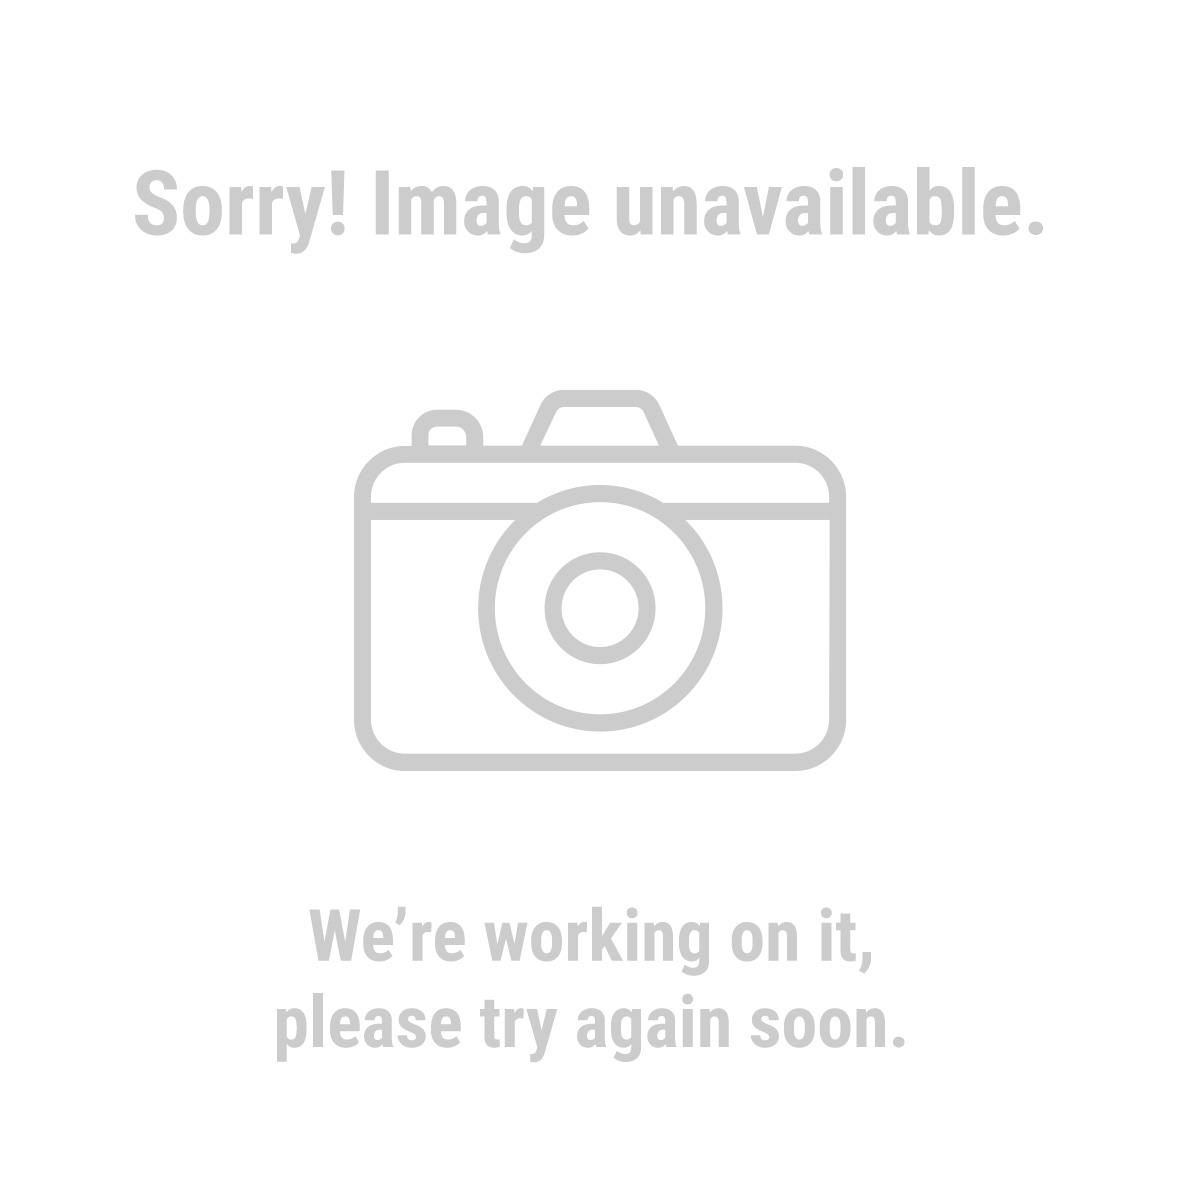 1113 20 Oz. Flexible Spout Oil Can